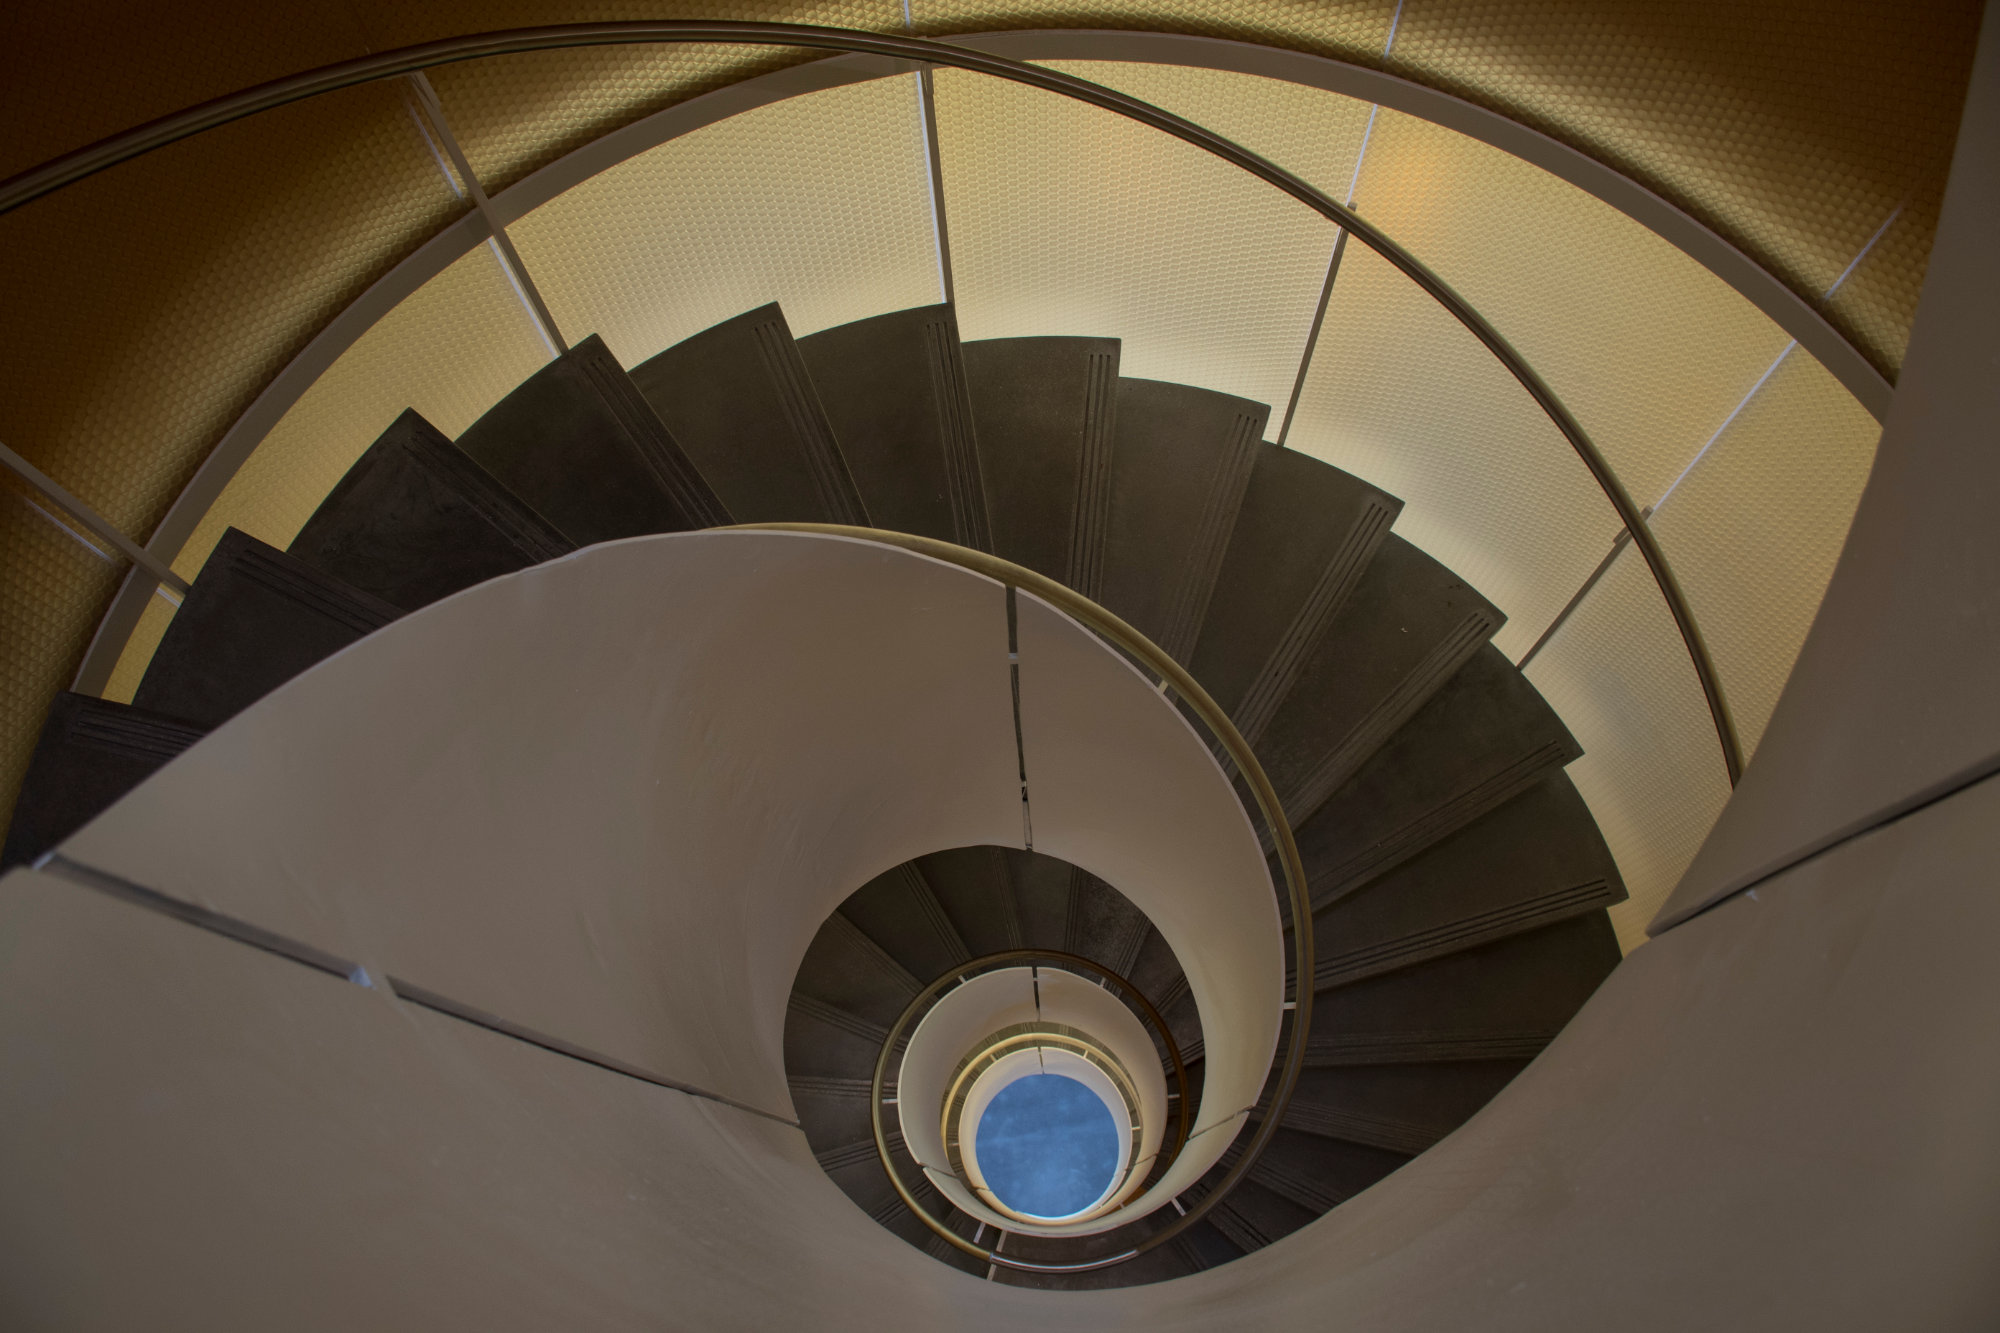 A view of the spiral staircase.